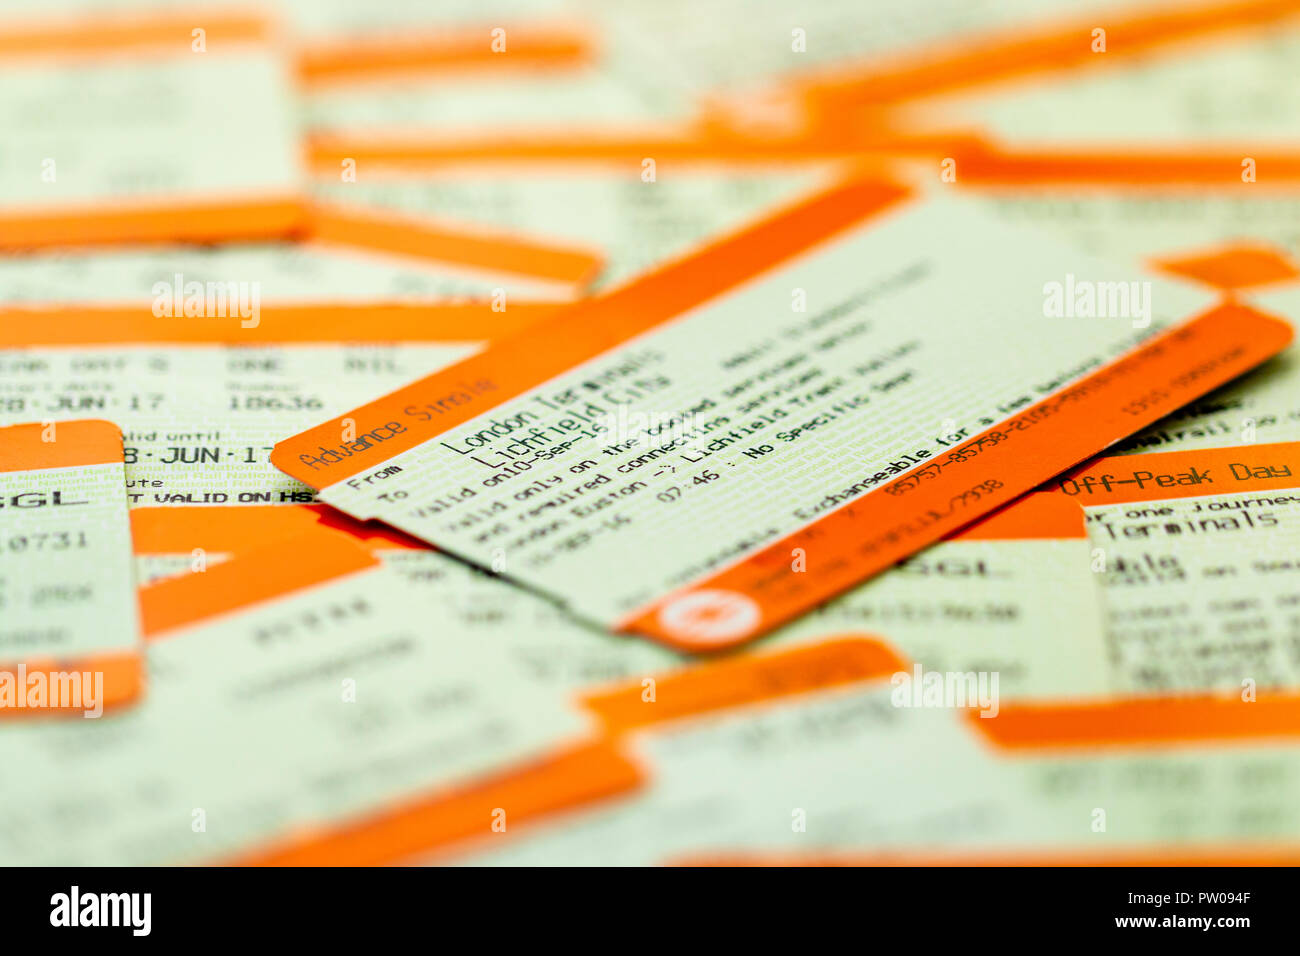 British railways ticket with others. Main ticket is Advance single. - Stock Image